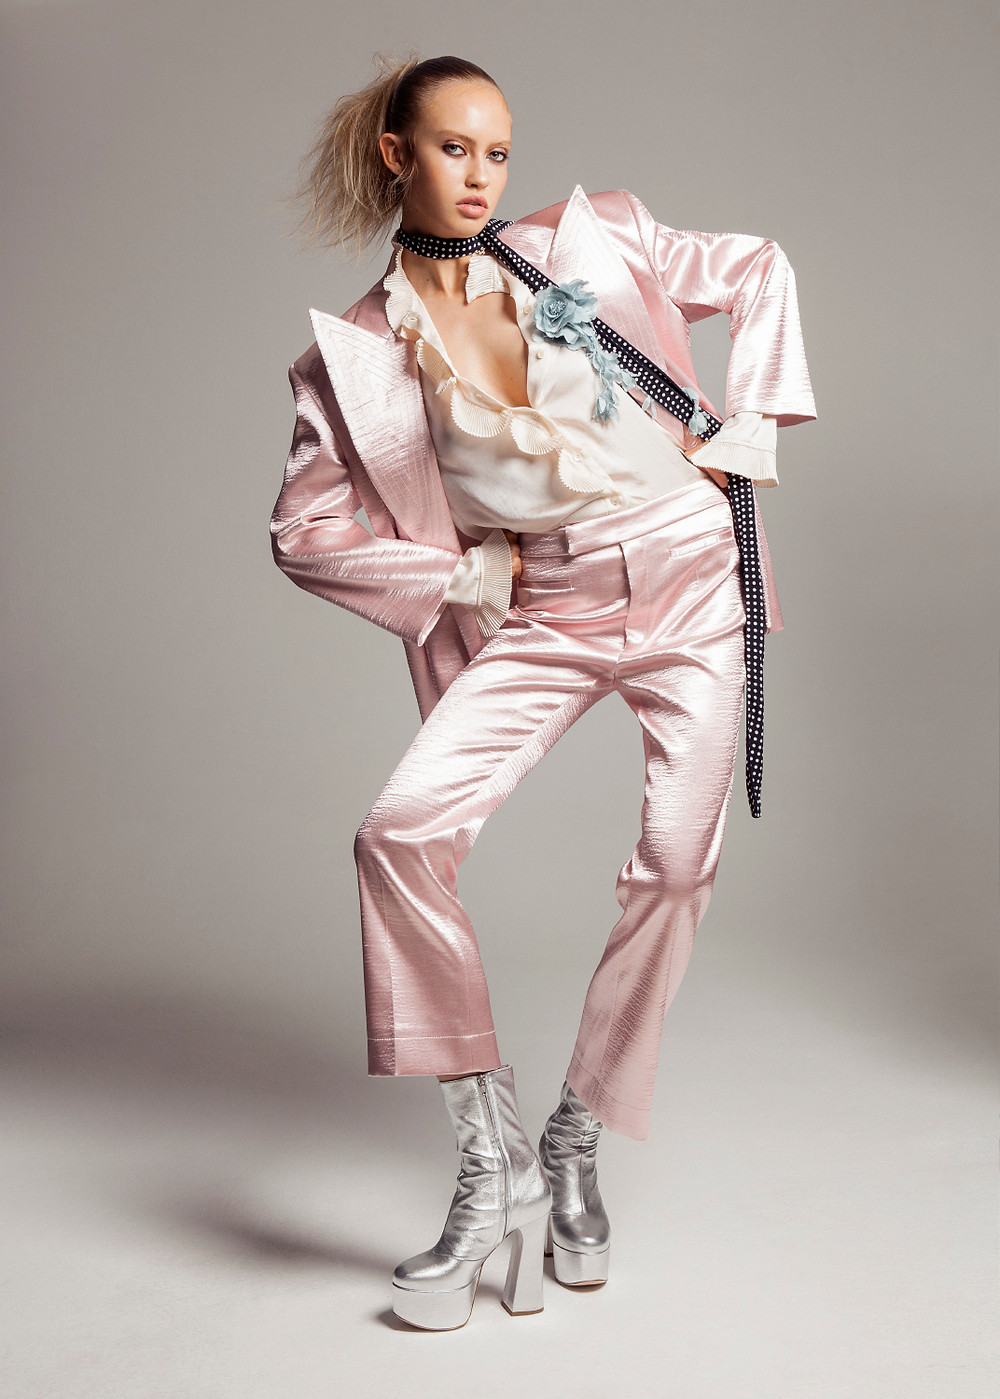 Oversized satin blazer with matching 70's cropped trousers, matte satin shirt with ruffles, polka dot crepe scarf, satin floral broach and metallic leather platform ankle boots, all by Philosophy di Lorenzo Serafini